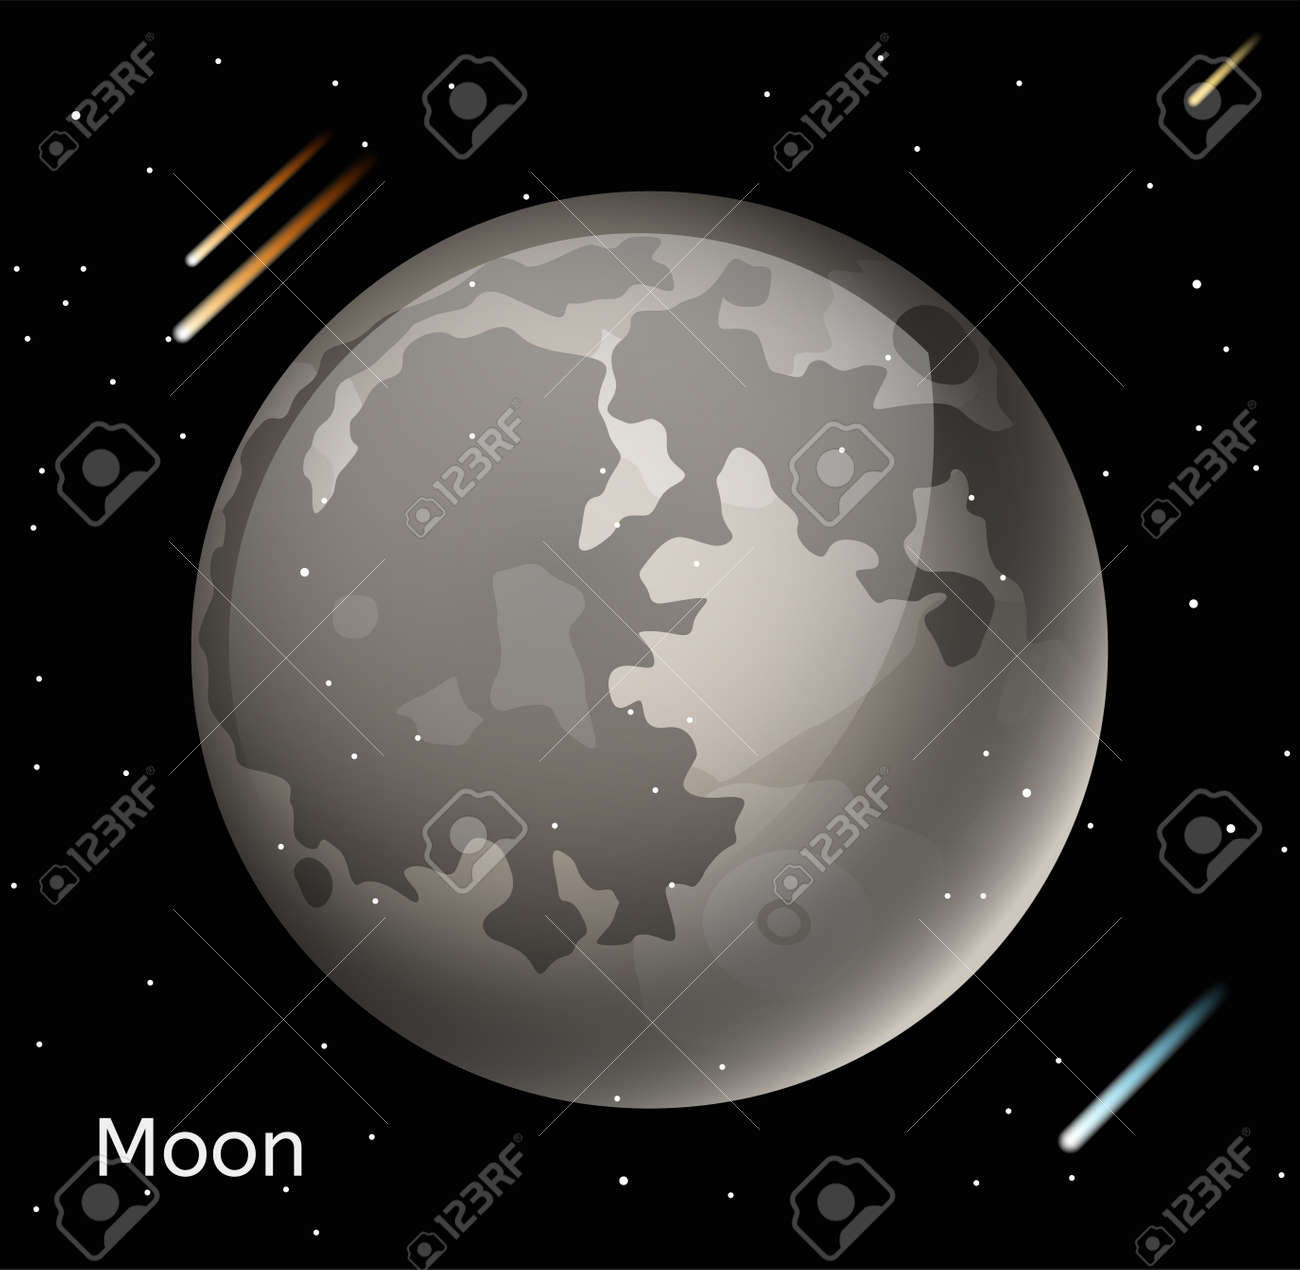 Moon planet 3d vector illustration globe moon texture map globe moon planet 3d vector illustration globe moon texture map globe vector moon view from gumiabroncs Image collections